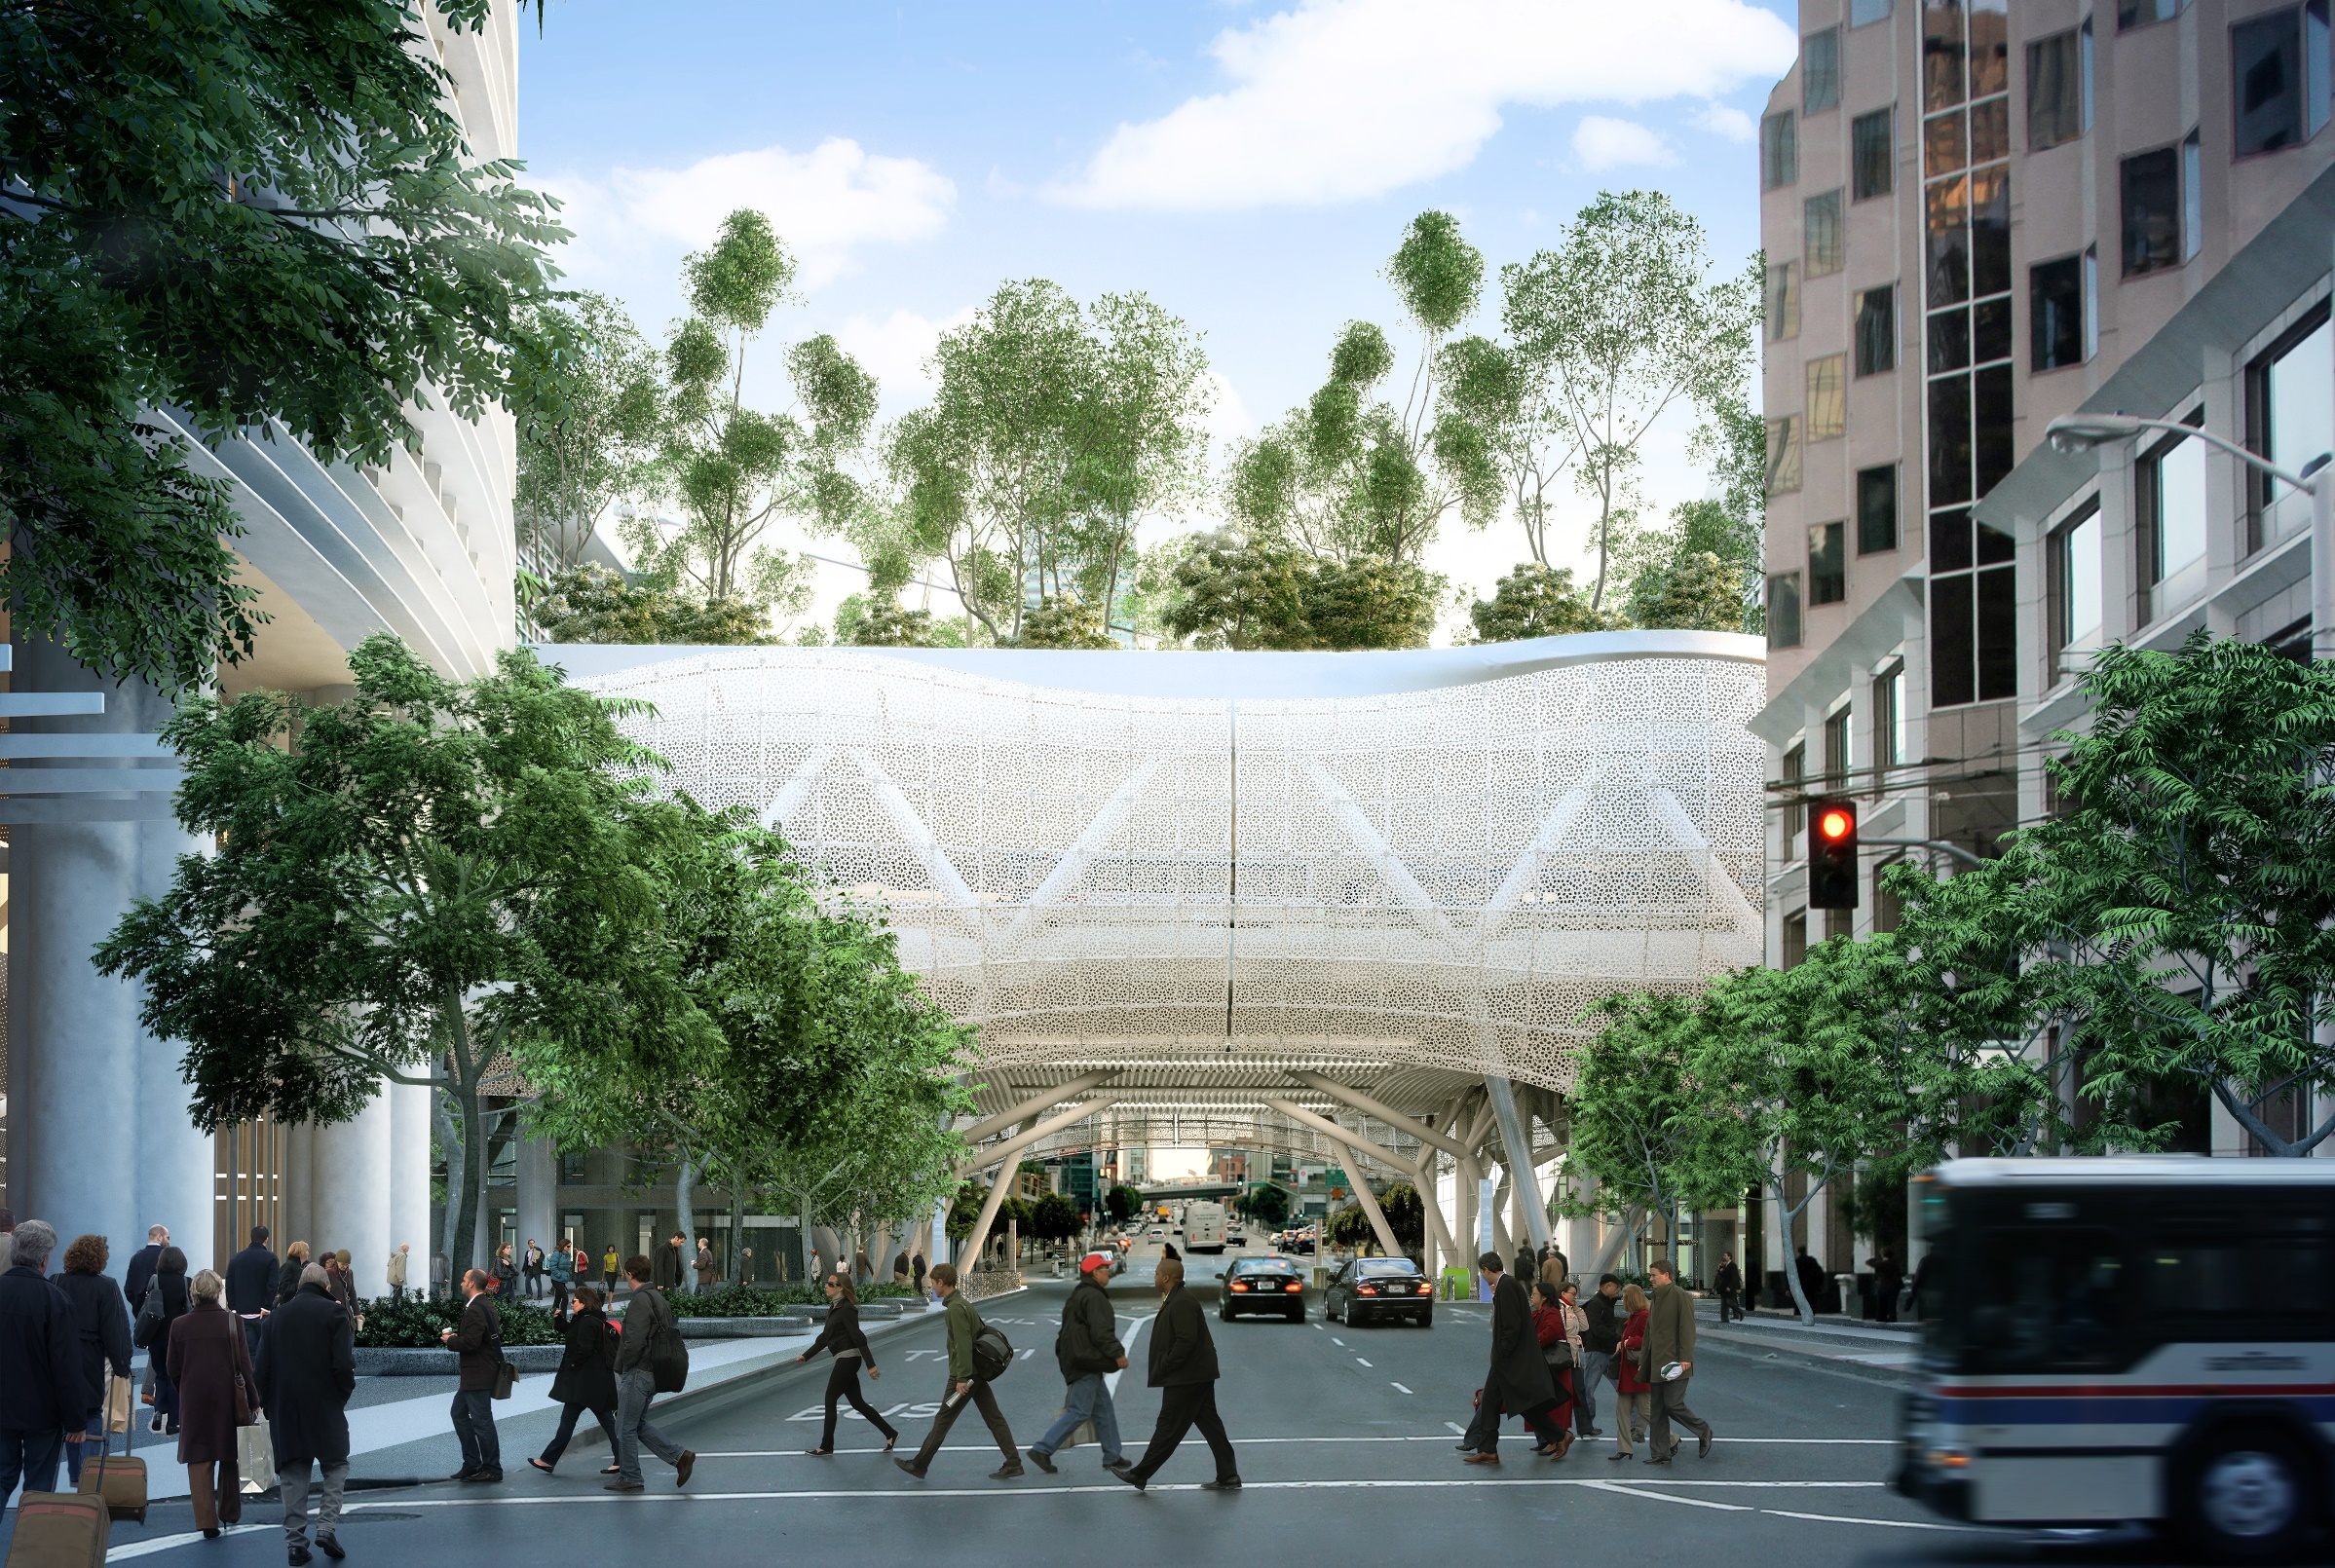 A rendering of the Transbay Transit Center in San Francisco. (Courtesy Transbay Transit Center Project)